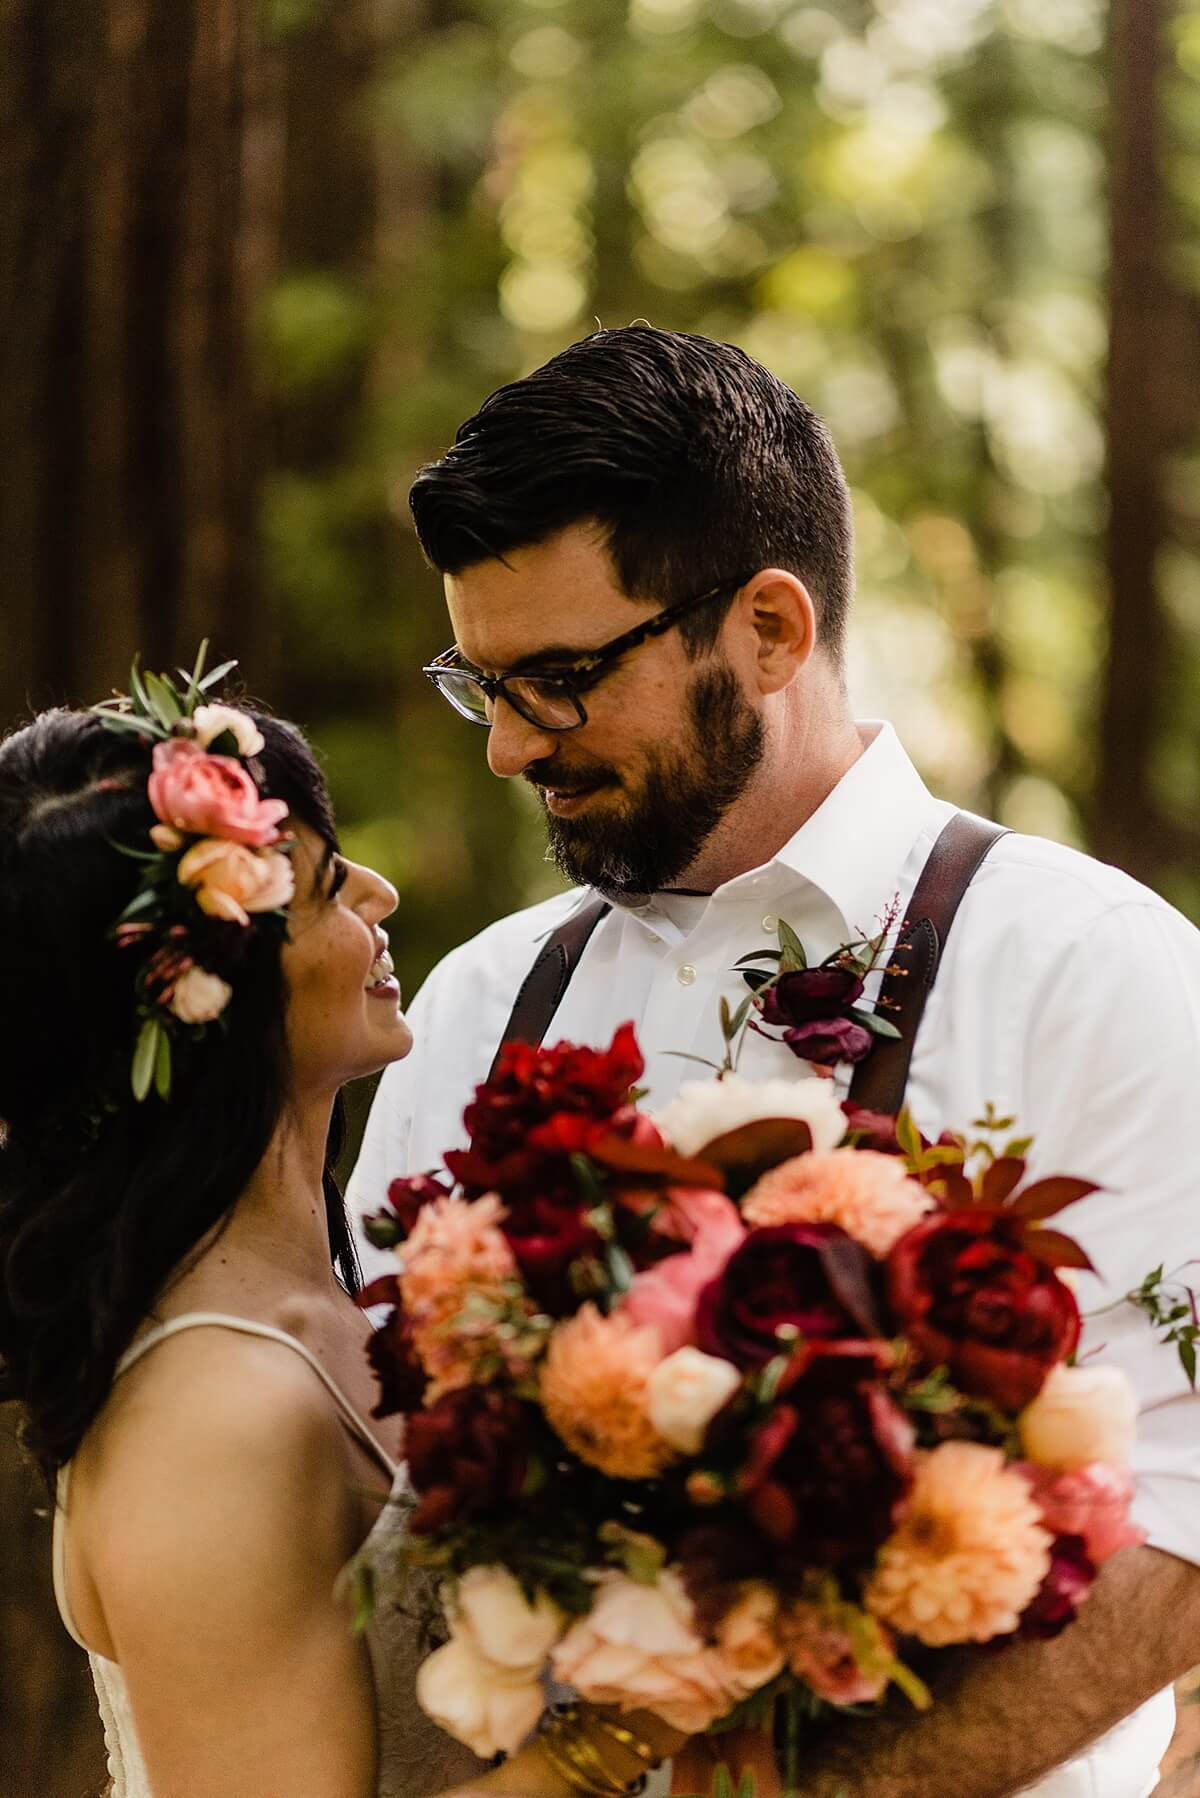 Allison-Brooks-Jedediah-Smiith-Redwoods-Adventure-Elopement-Wedding-S-Photography-Blog_0012.jpg